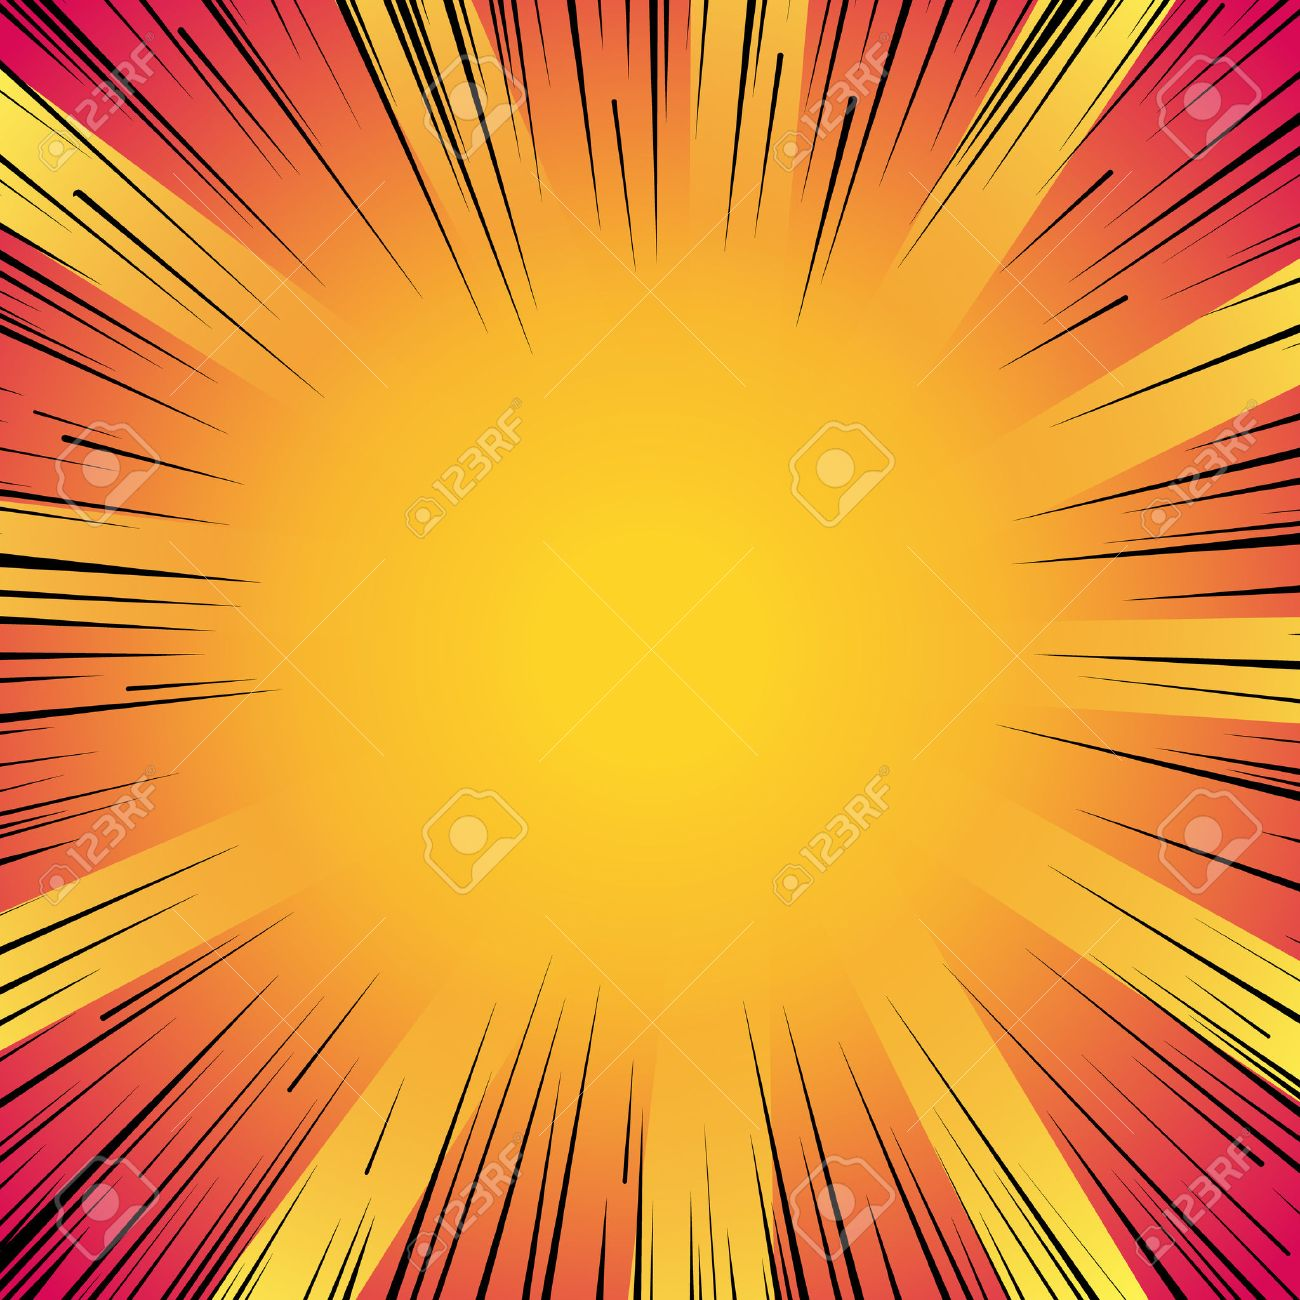 Abstract comic book flash explosion radial lines background. - 53985435